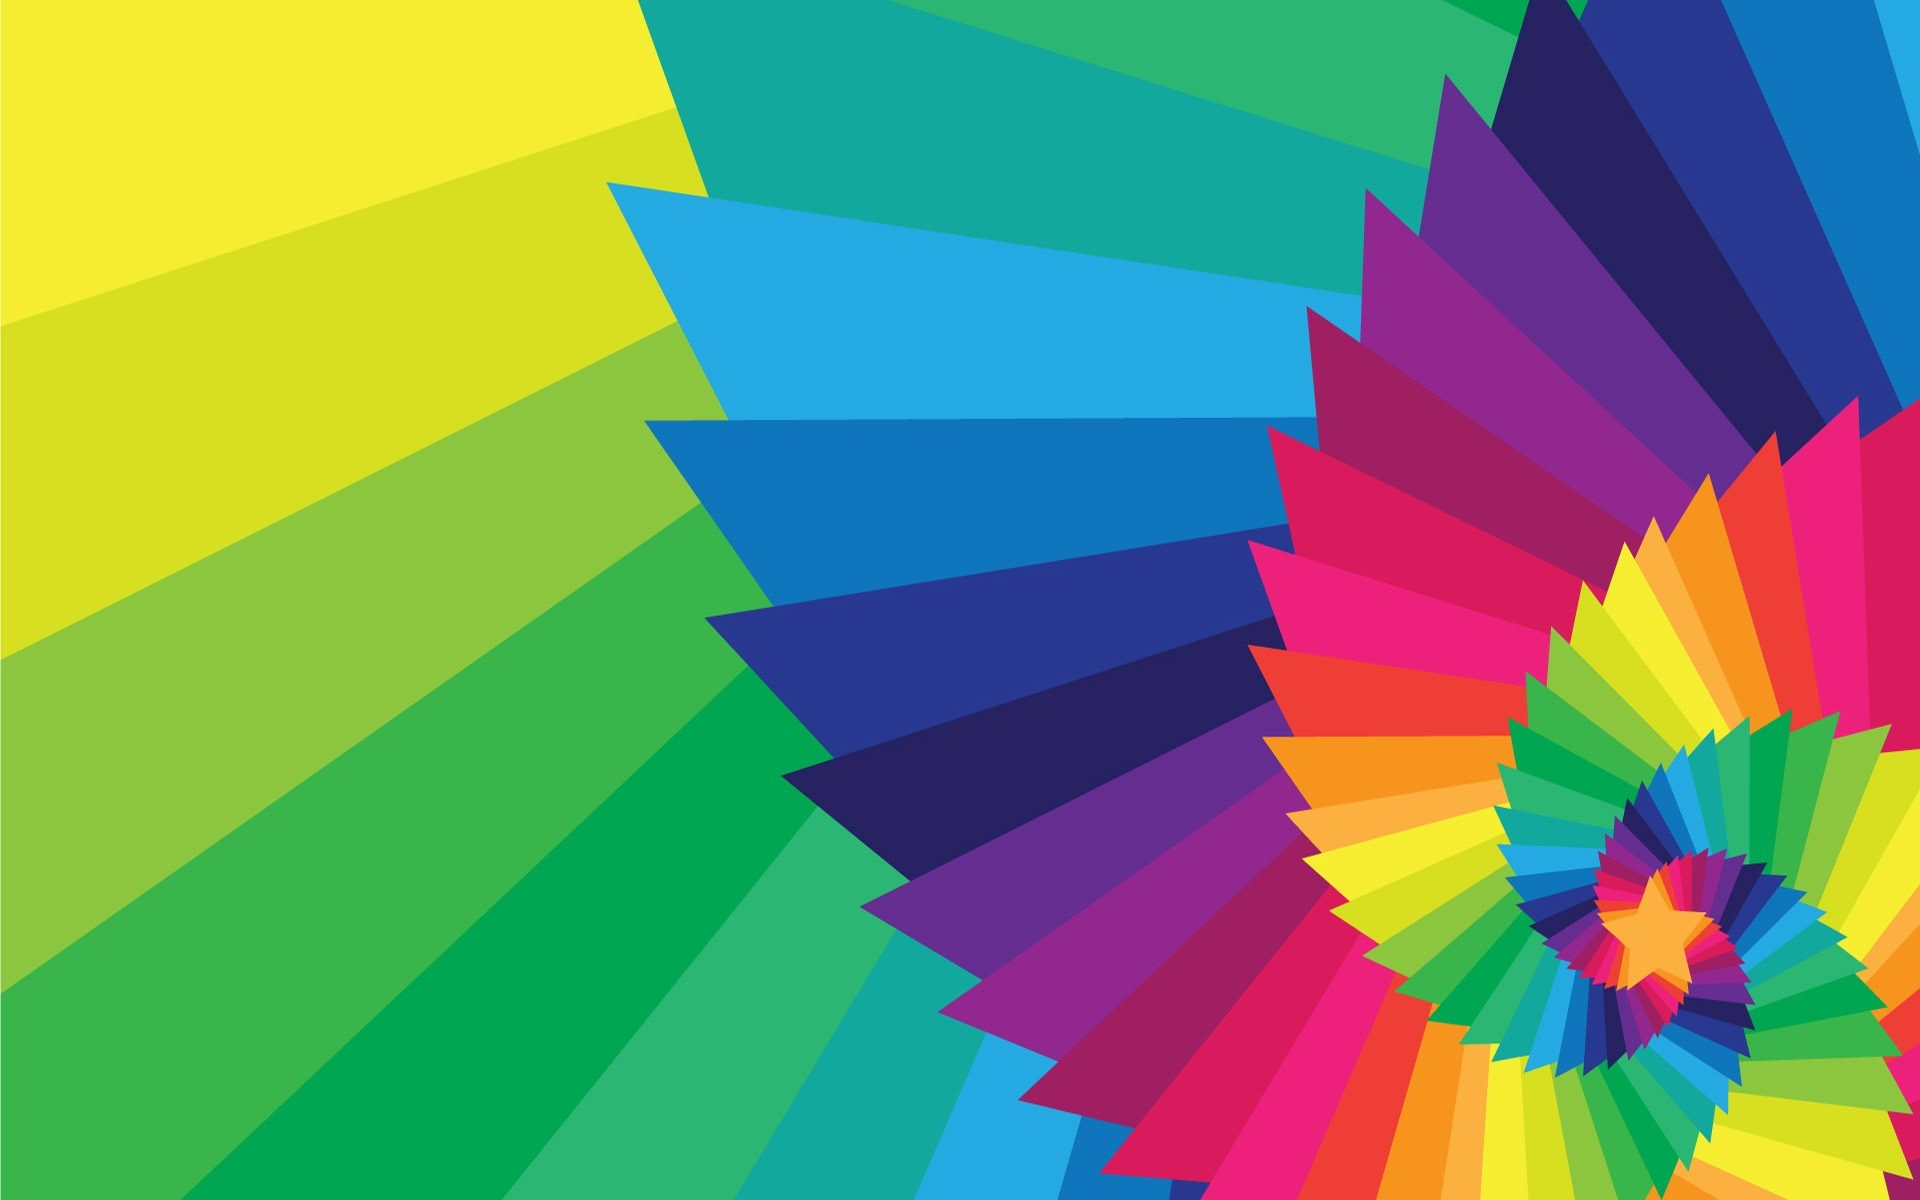 Res: 1920x1200, Bright Colors Wallpaper For Desktop, HD Wallpapers For Free » M.F.  Backgrounds